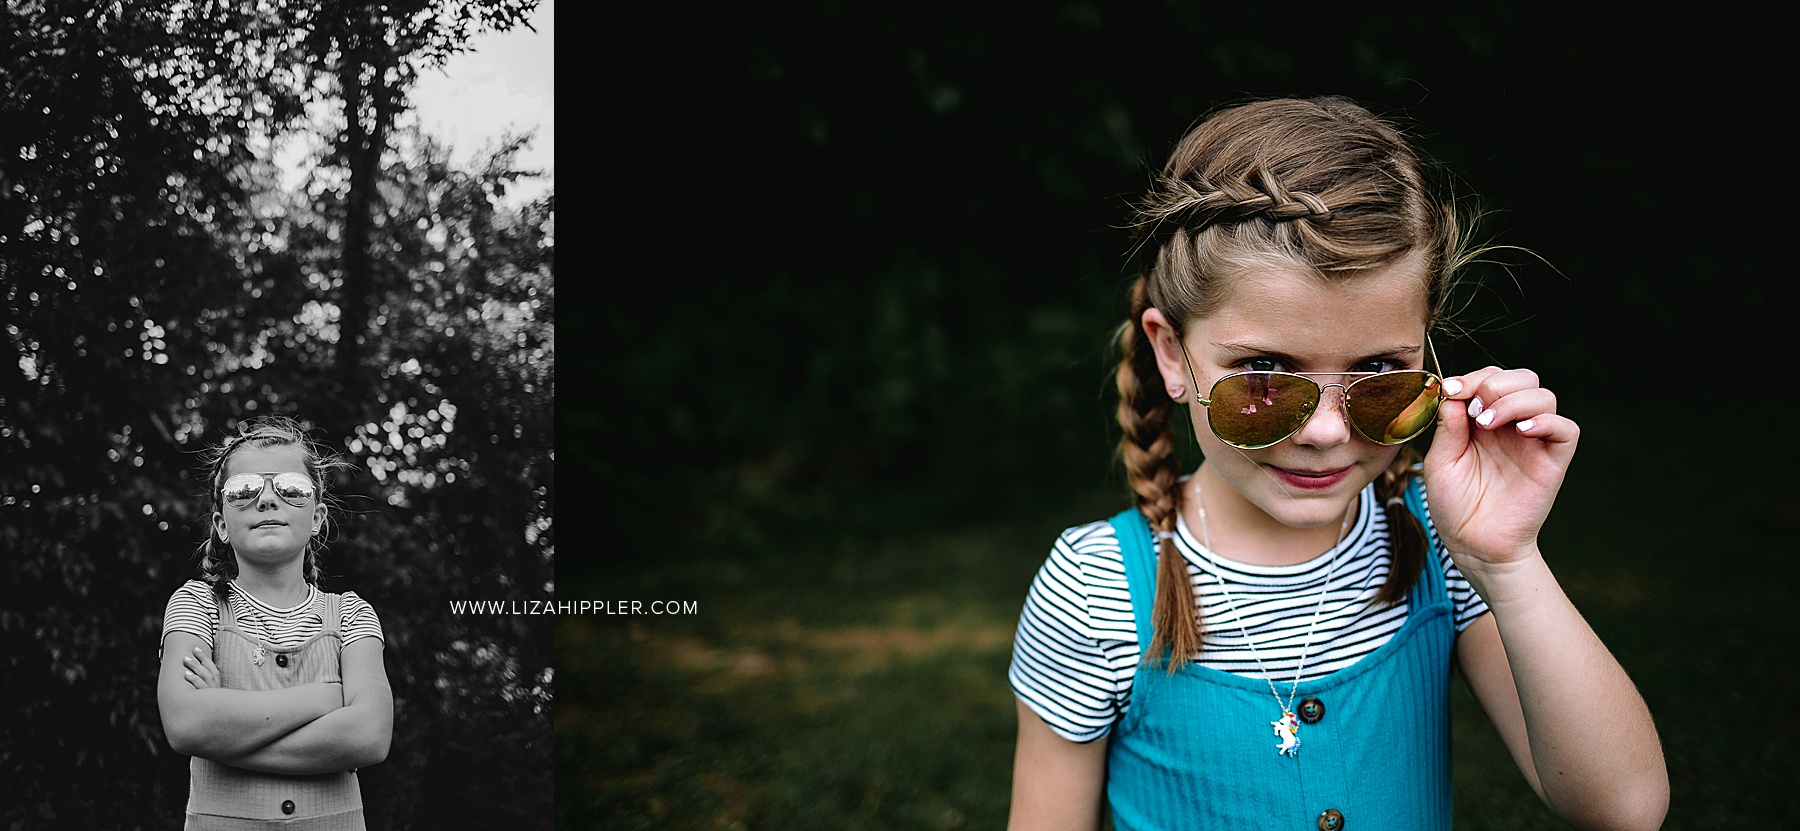 girl poses with sunglasses